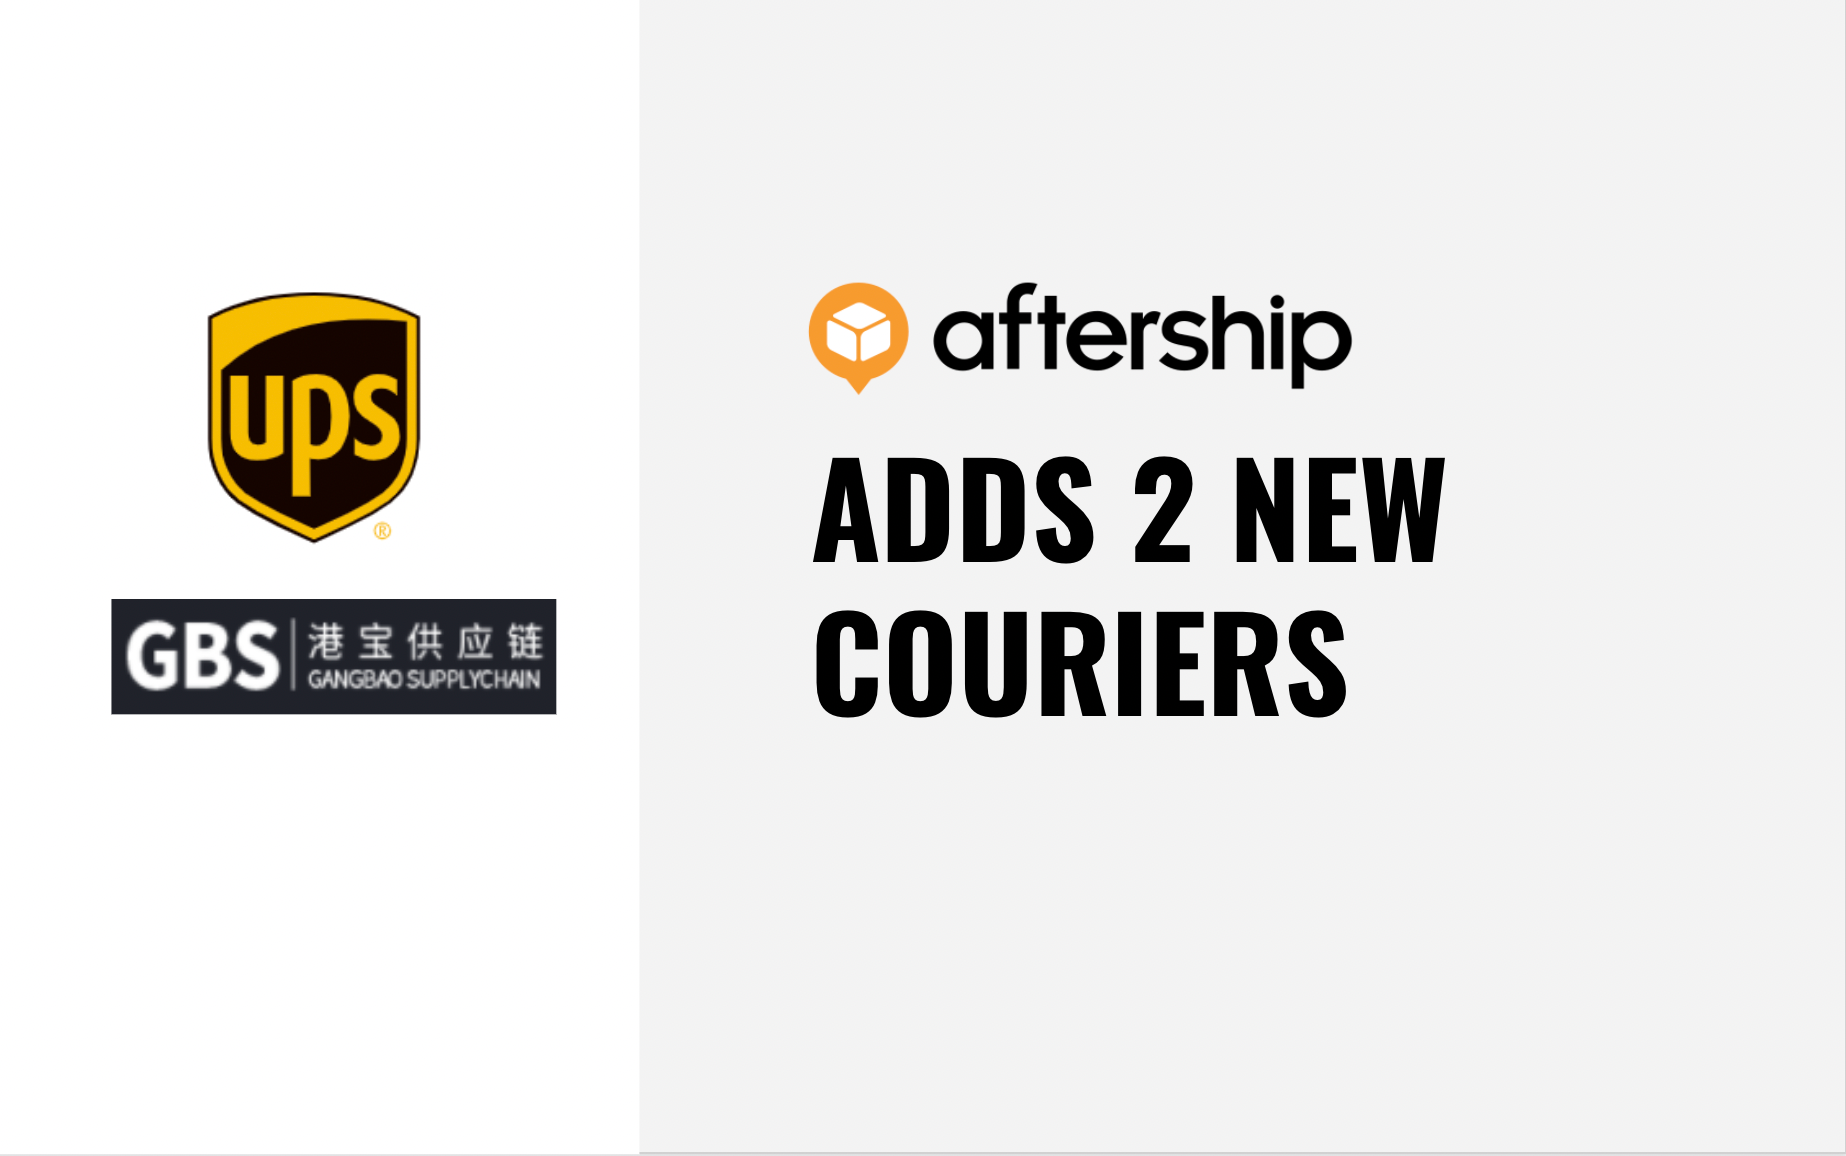 AfterShip adds 2 new couriers this week (22nd Feb 2021 to 1st Mar 2021)